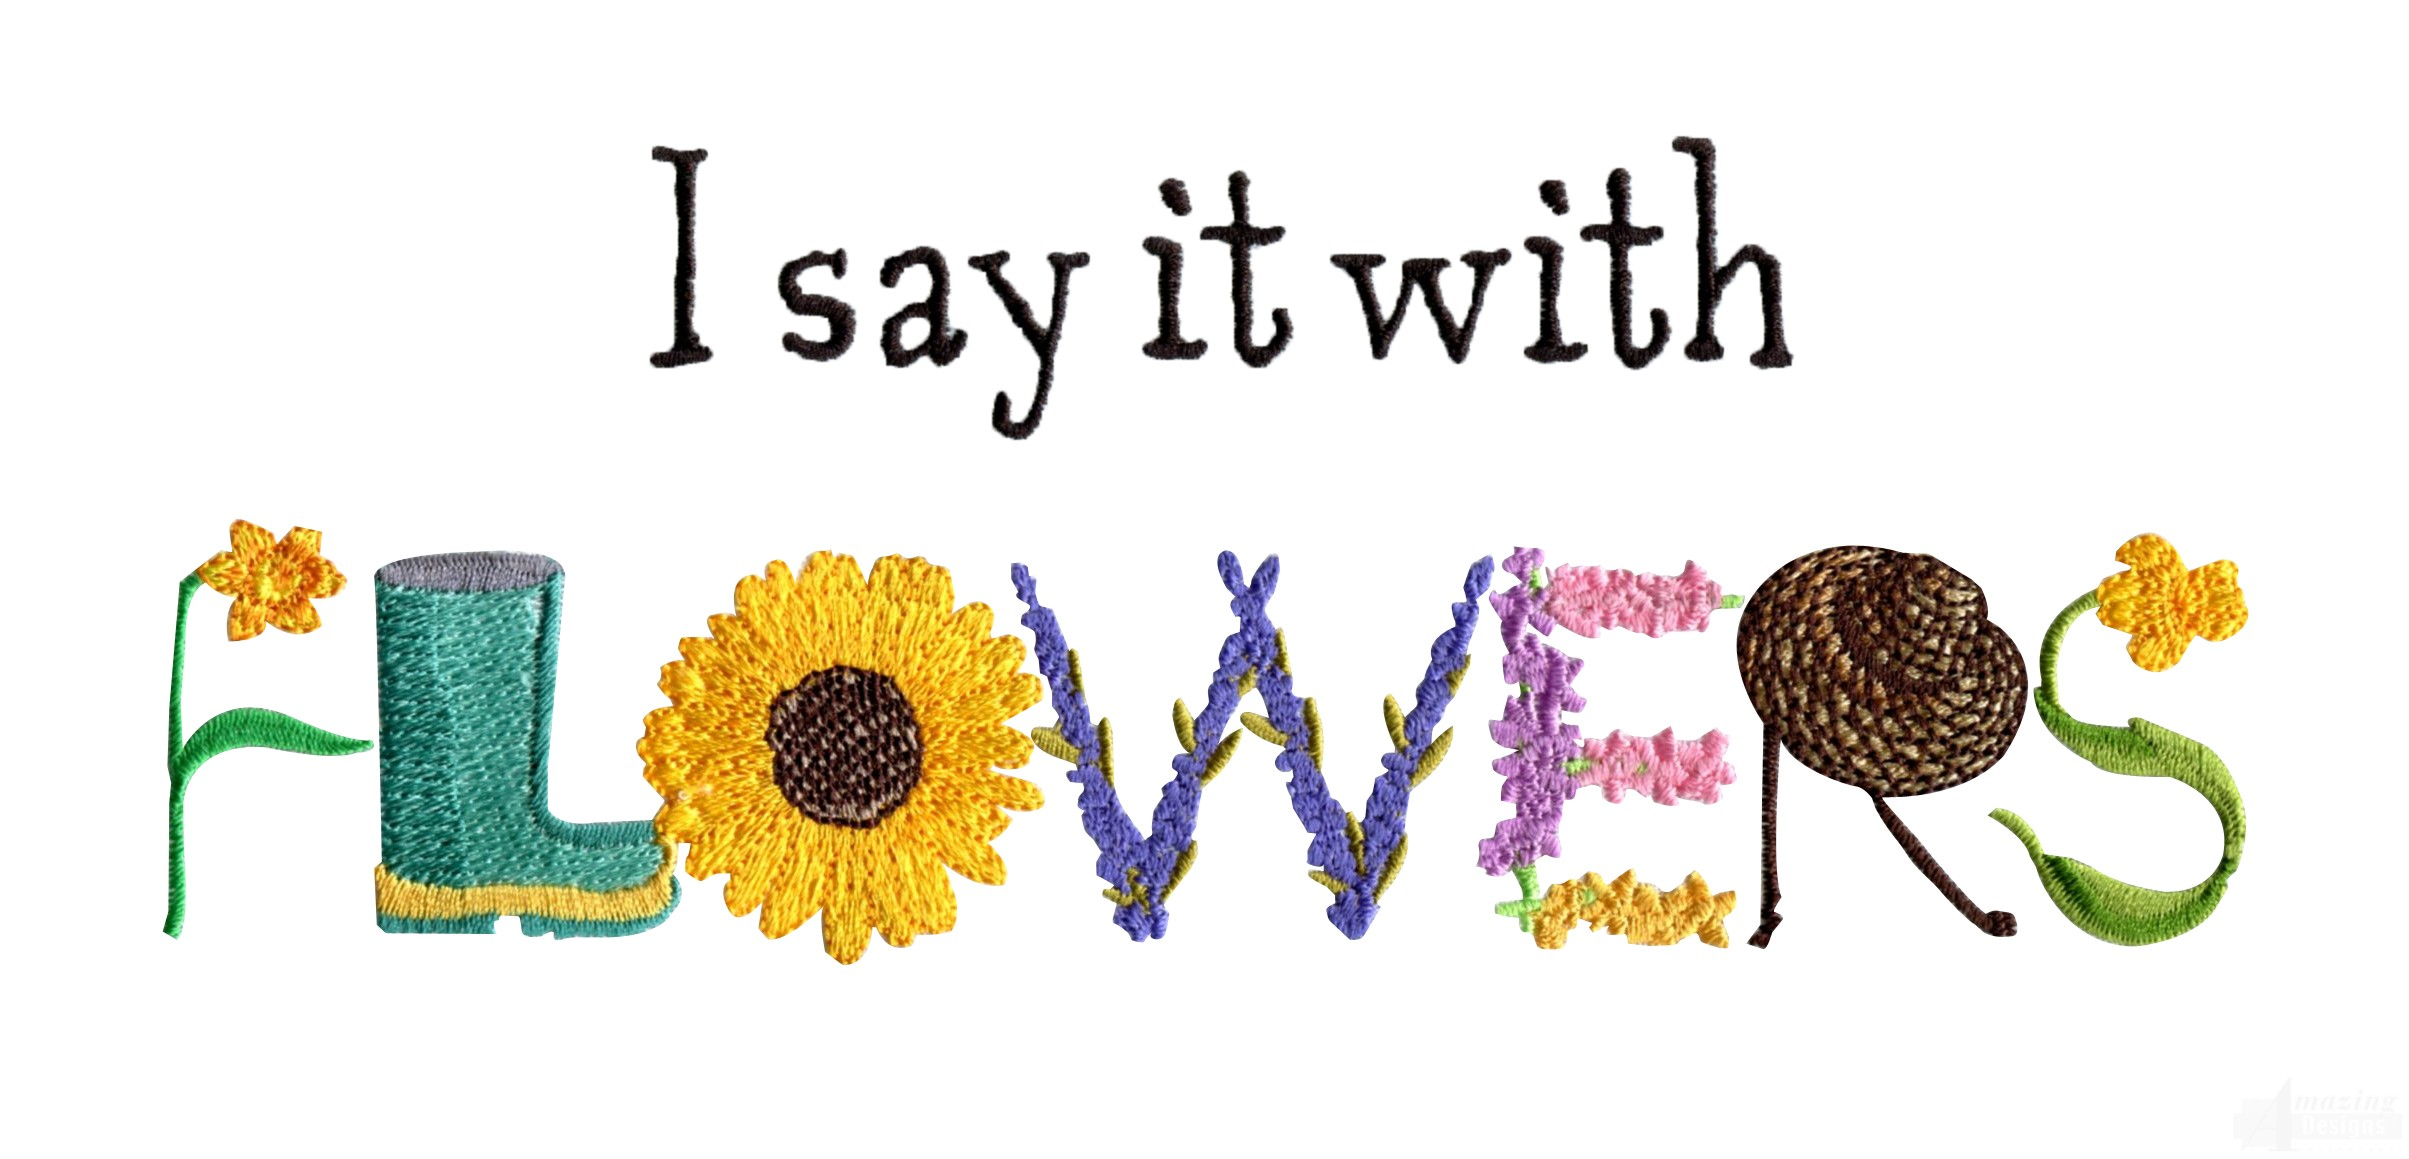 say it with flowers Download this app from microsoft store for windows 10 mobile, windows phone 81, windows phone 8 see screenshots, read the latest customer reviews, and compare ratings for say it with flowers.